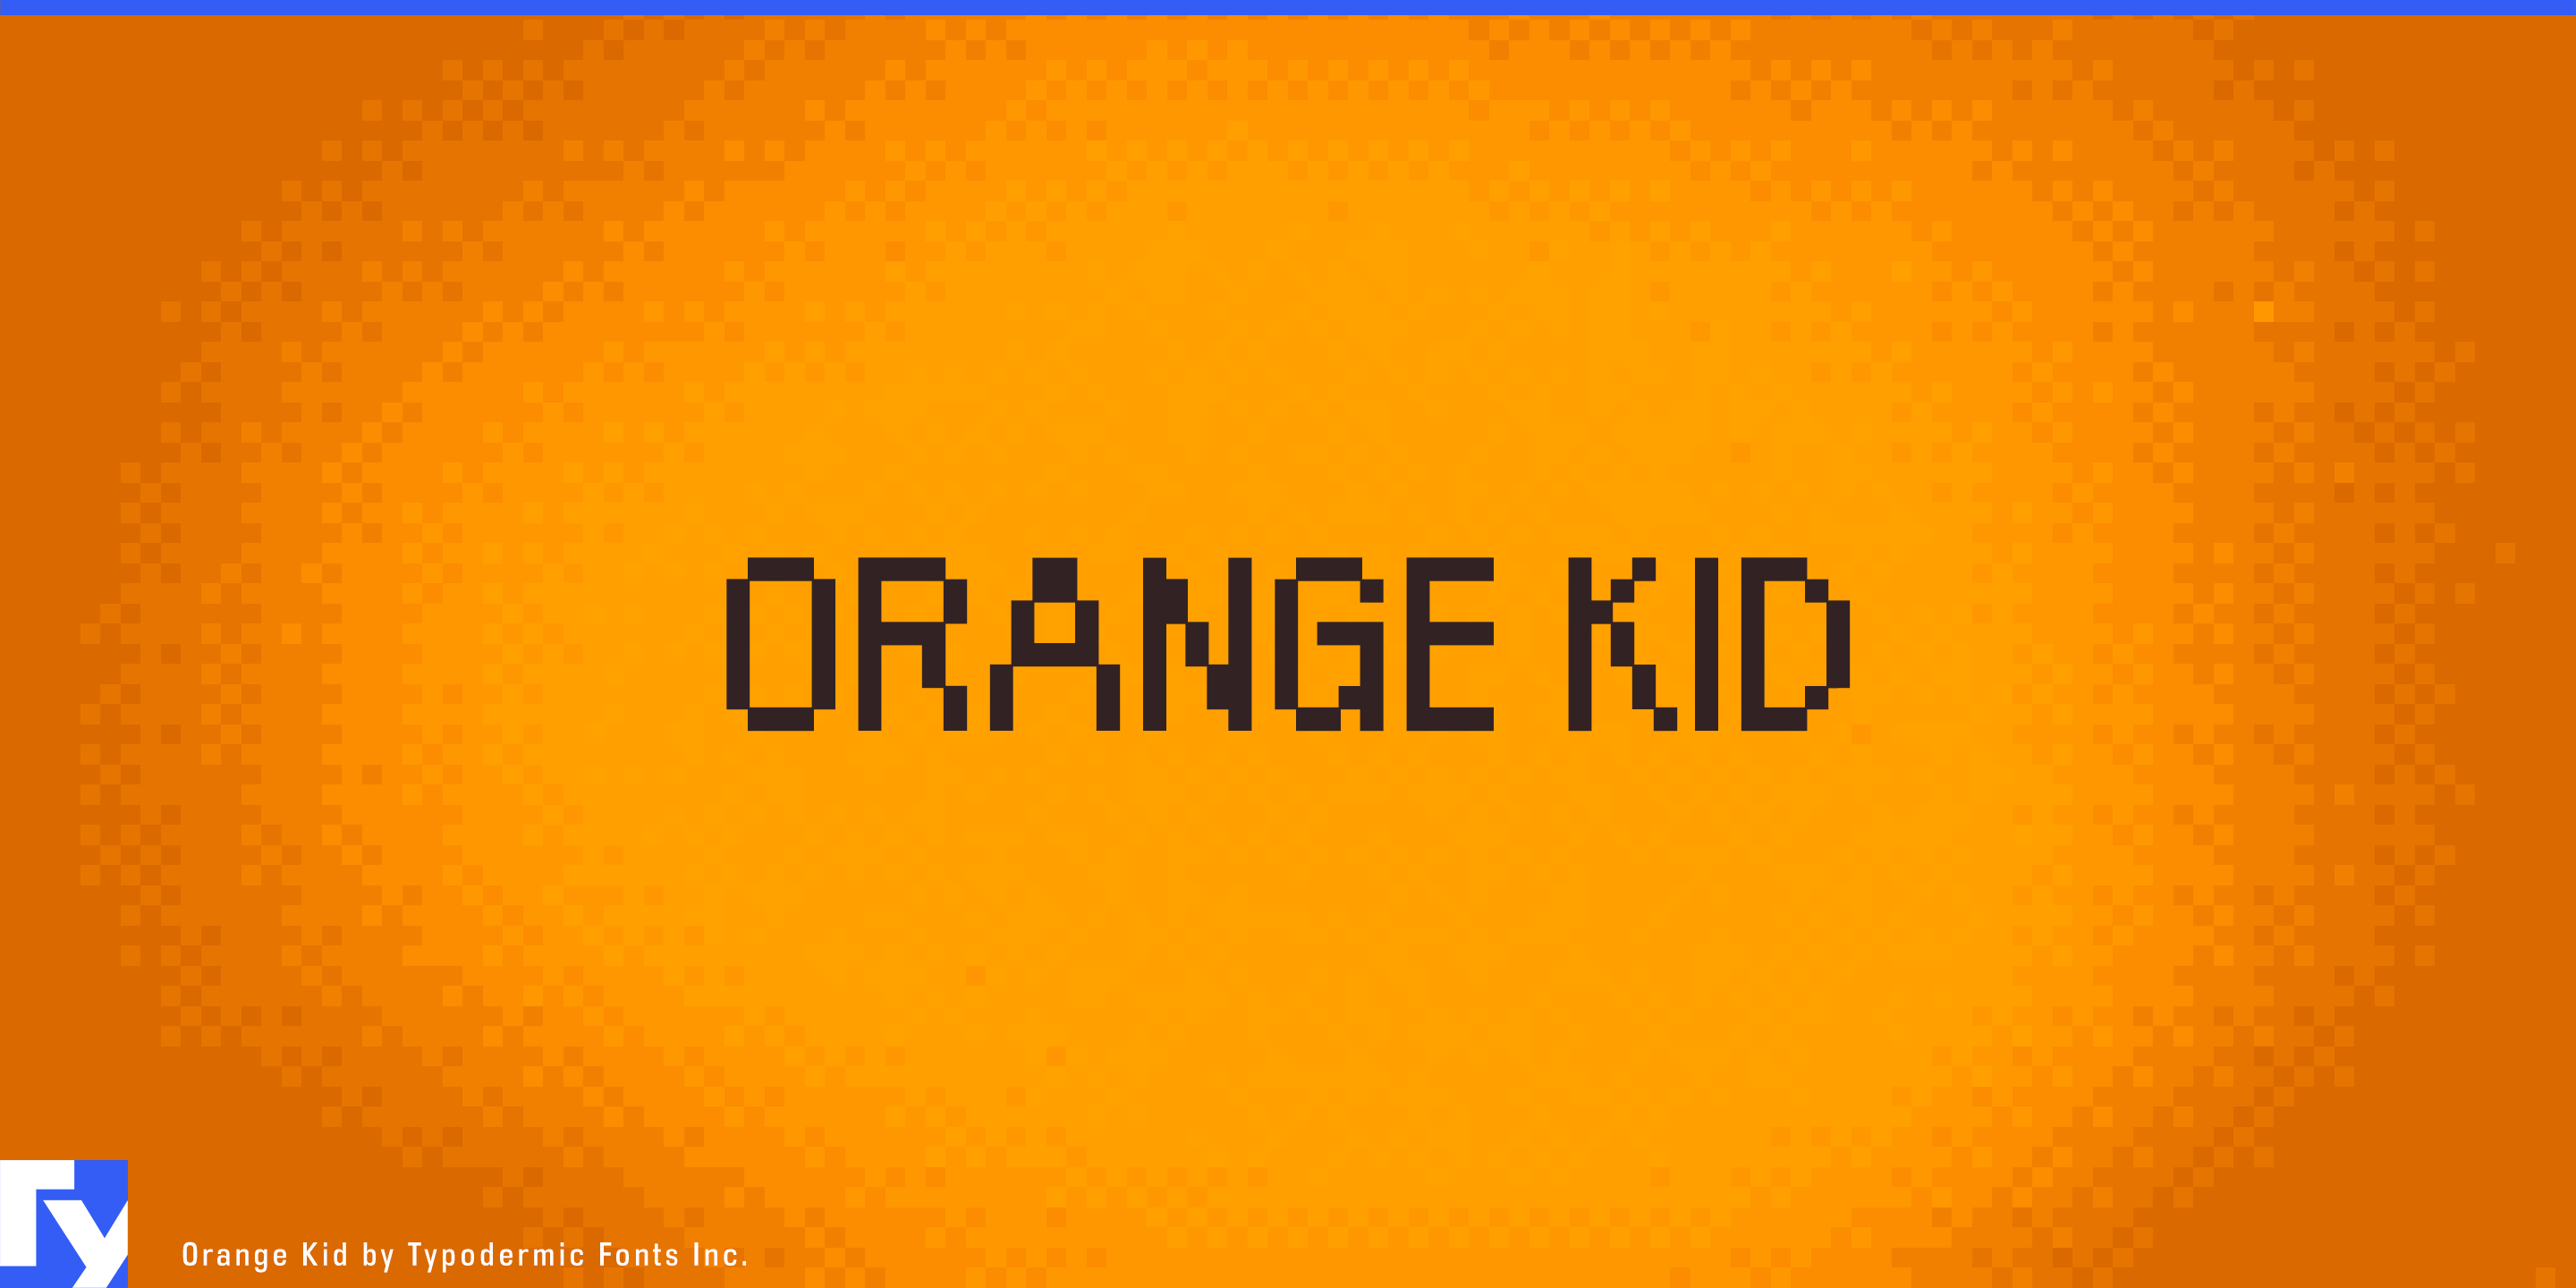 Orange Kid typeface sample from Typodermic Fonts Inc.